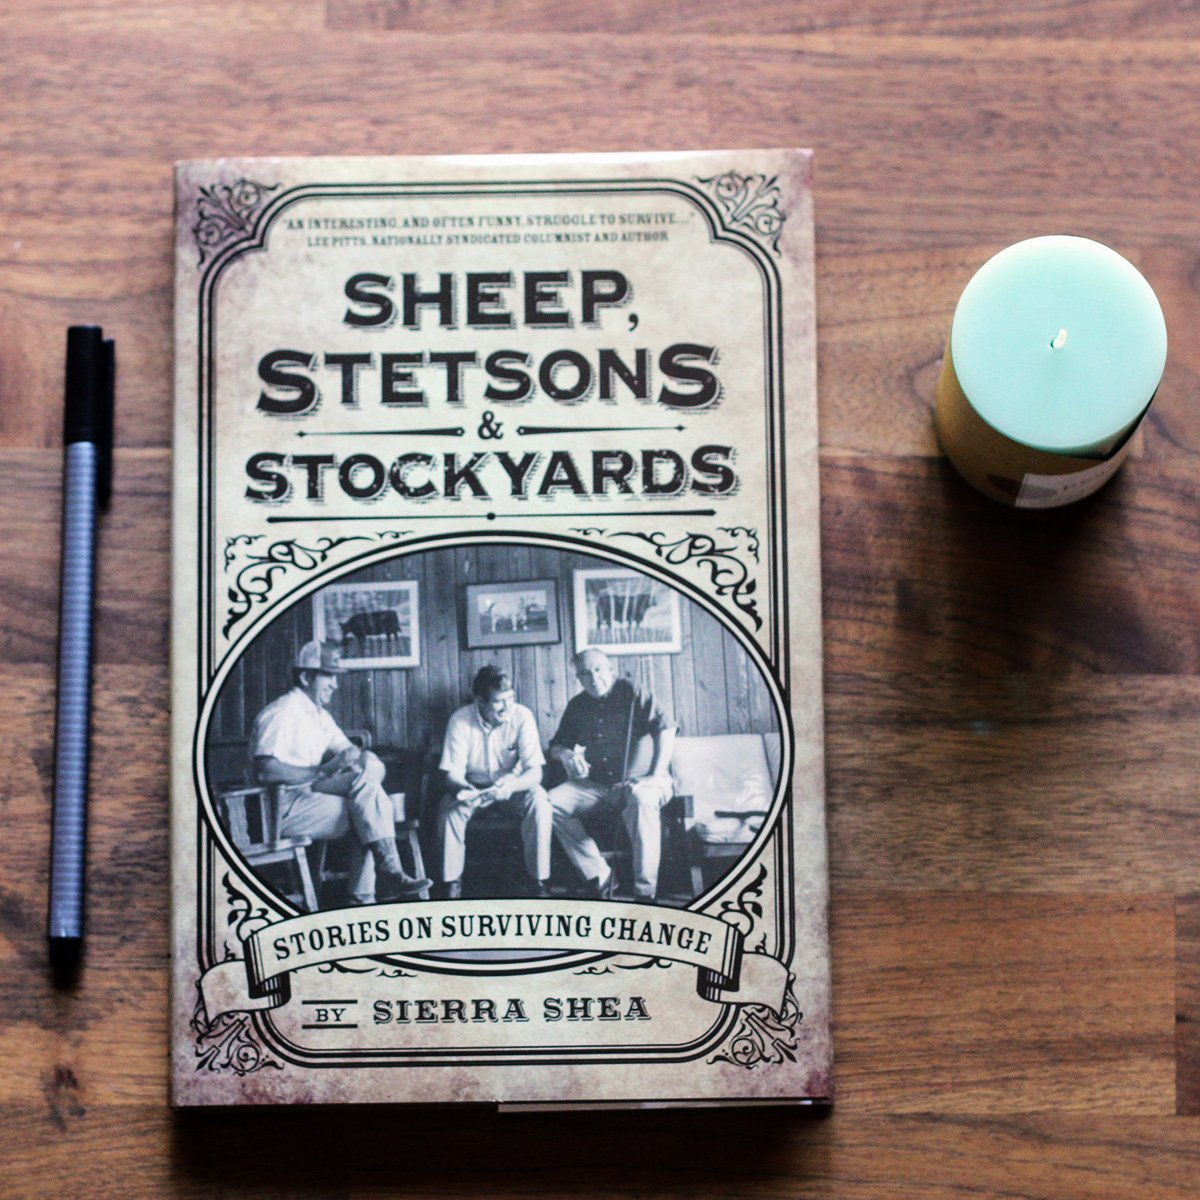 Sheep, Stetsons & Stockyards: Excerpt from the book